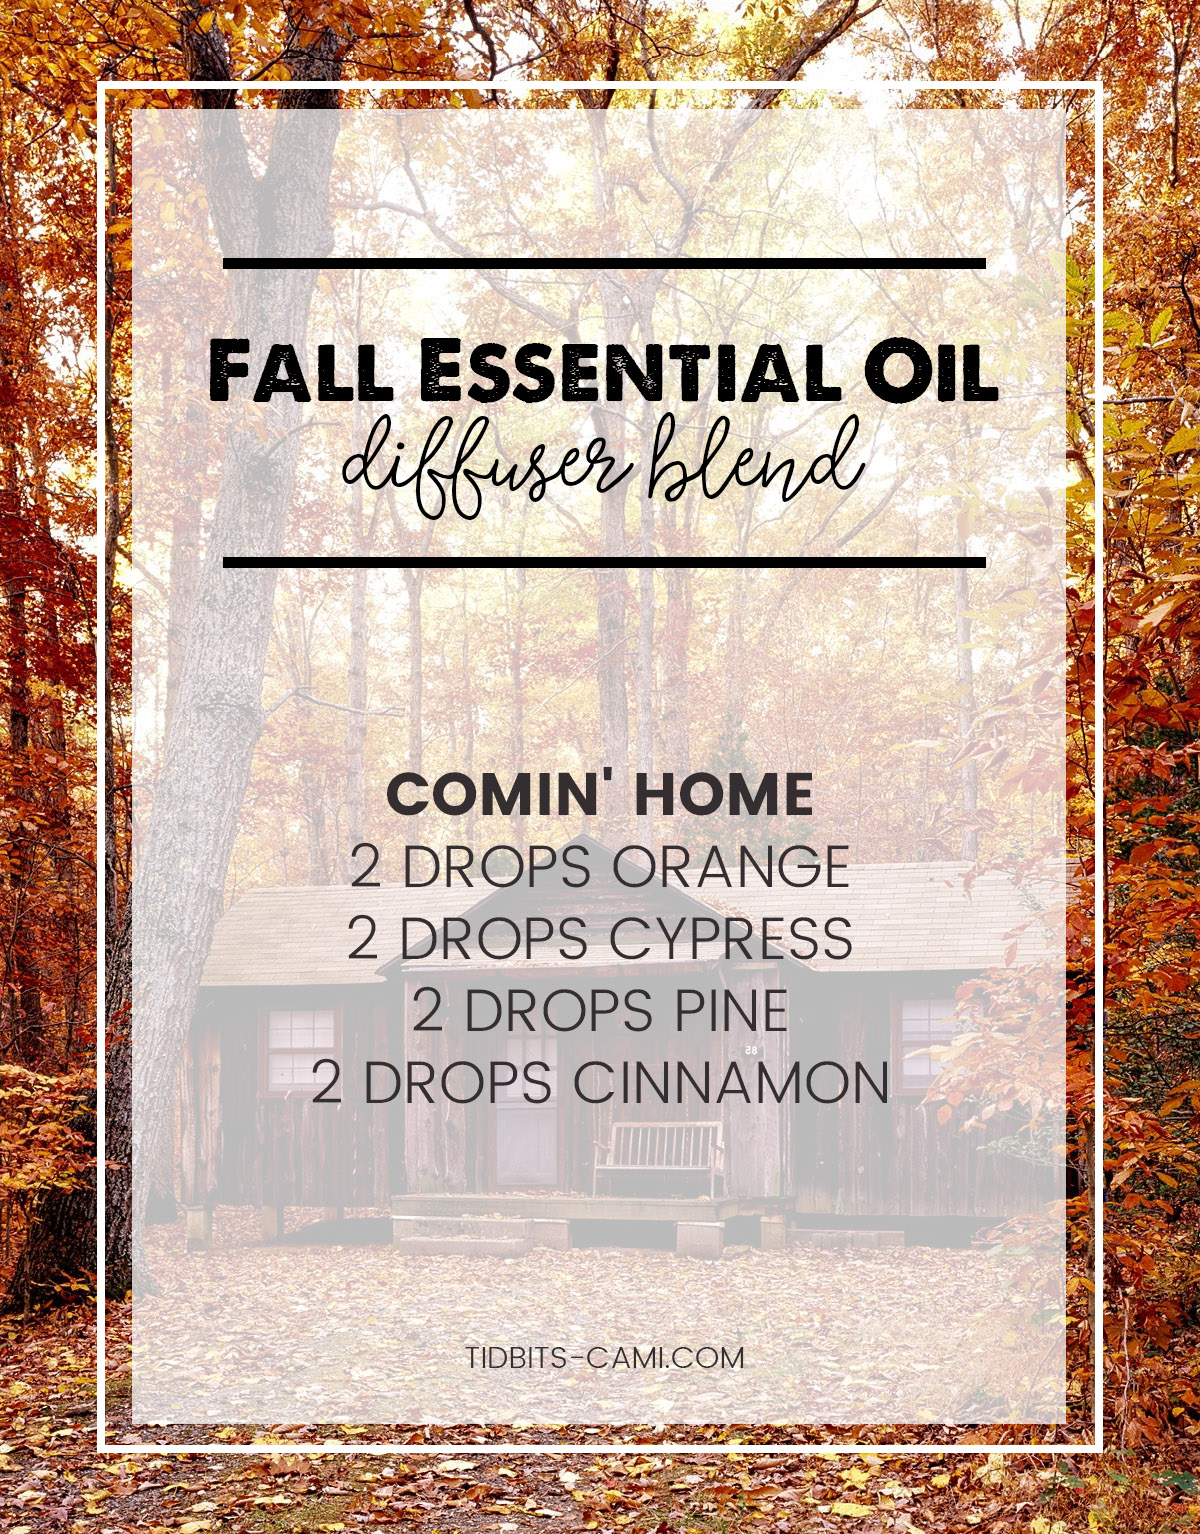 comin home essential oil diffuser blend